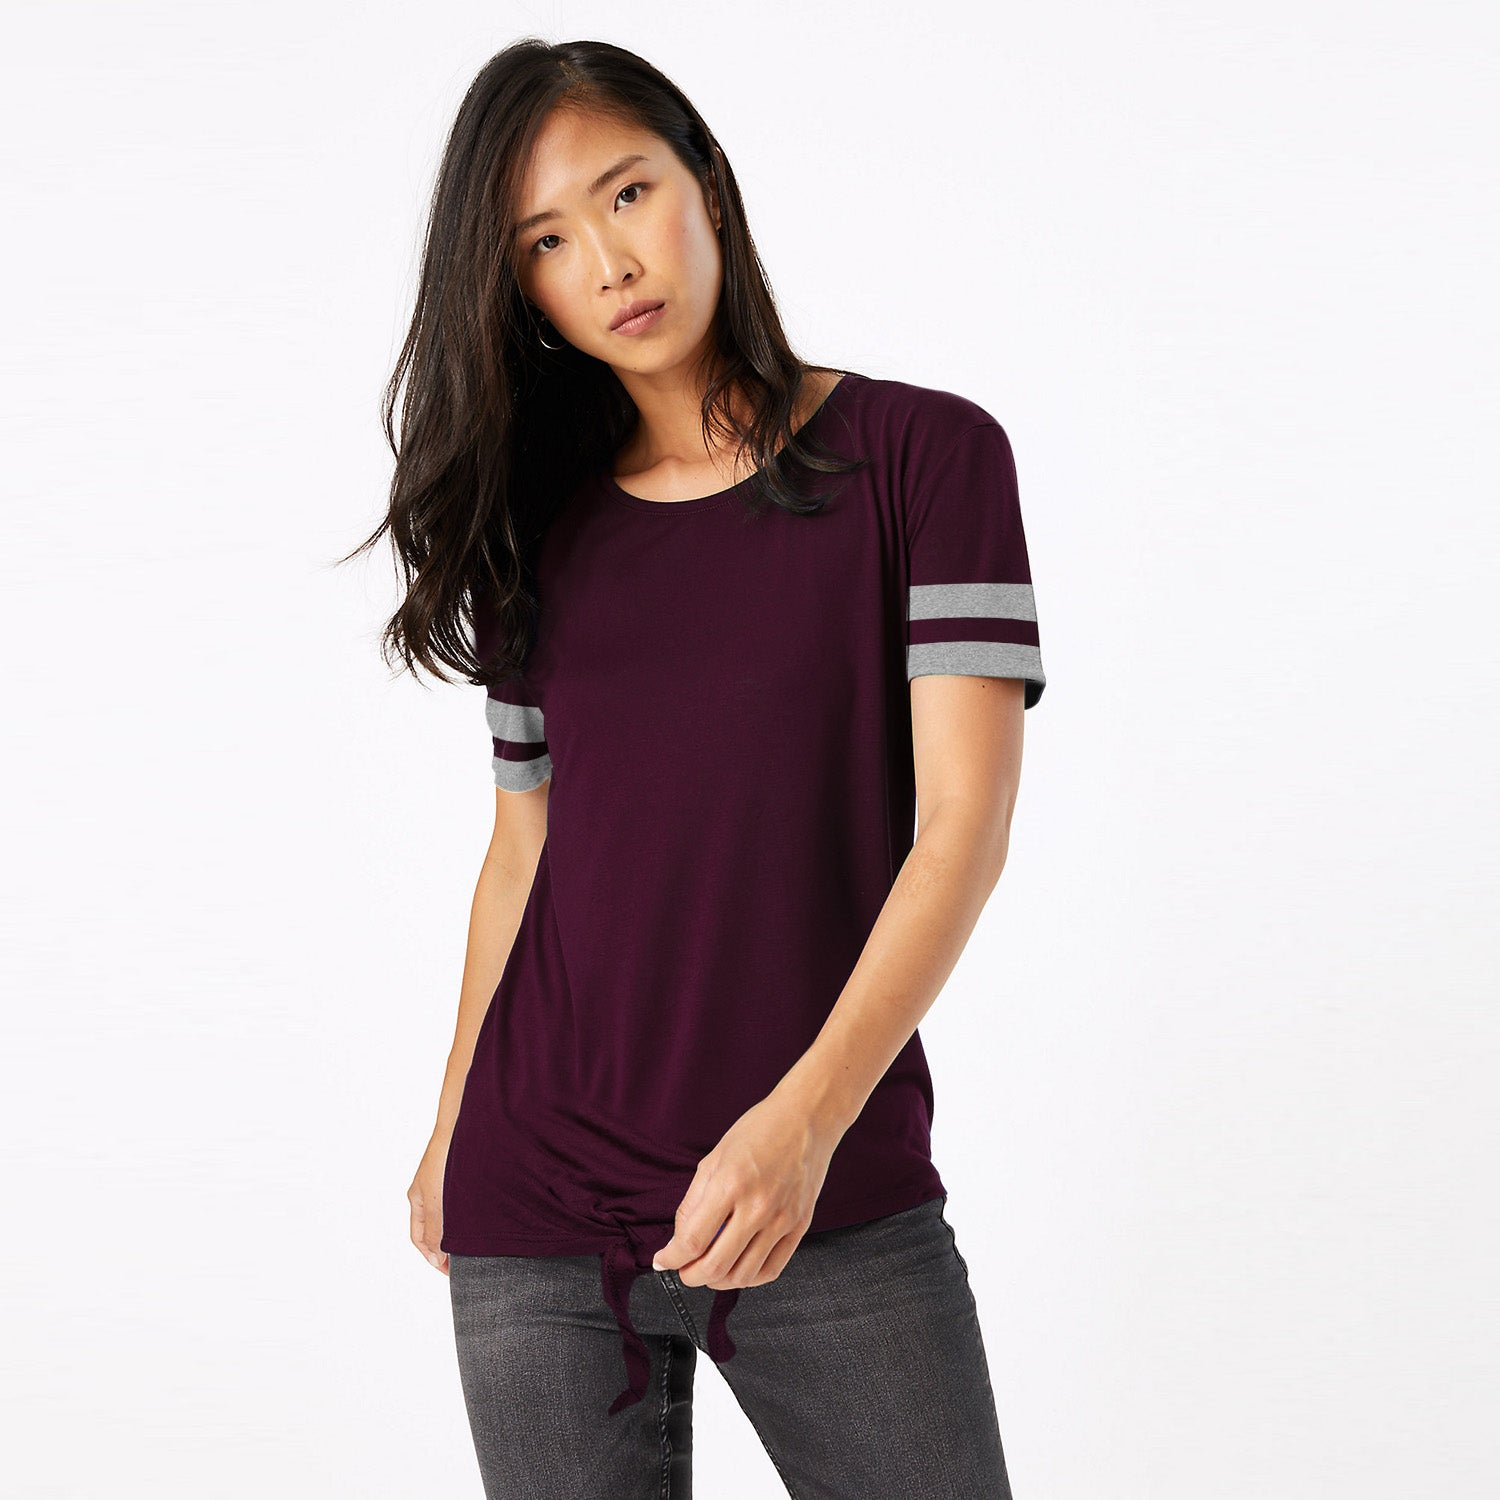 Miss Popular Viscose Crew Neck Crop Tie Tee Shirt For Women-BE9654